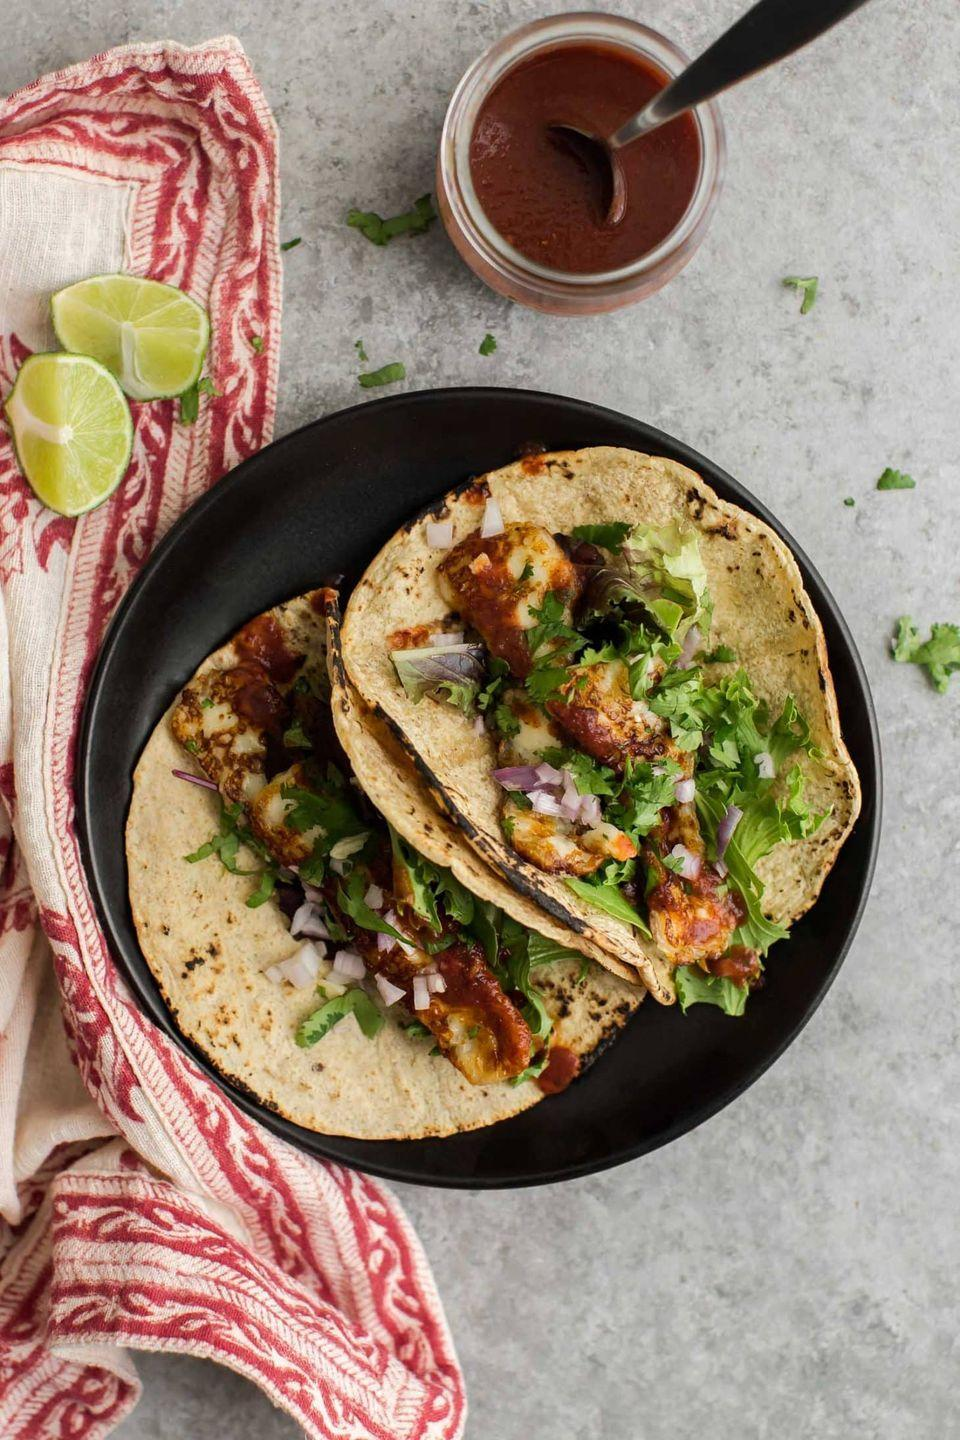 """<p>These halloumi tacos are kept deliciously simple with a few greens, fried halloumi tossed in garlic and coriander, and topped with a sprinkle of onion and hot sauce.</p><p>Get the <a href=""""https://naturallyella.com/garlicky-halloumi-tacos/"""" rel=""""nofollow noopener"""" target=""""_blank"""" data-ylk=""""slk:Garlicky Halloumi Tacos"""" class=""""link rapid-noclick-resp"""">Garlicky Halloumi Tacos</a> recipe.</p><p>Recipe from <a href=""""https://naturallyella.com/"""" rel=""""nofollow noopener"""" target=""""_blank"""" data-ylk=""""slk:Naturally Ella"""" class=""""link rapid-noclick-resp"""">Naturally Ella</a>.</p>"""